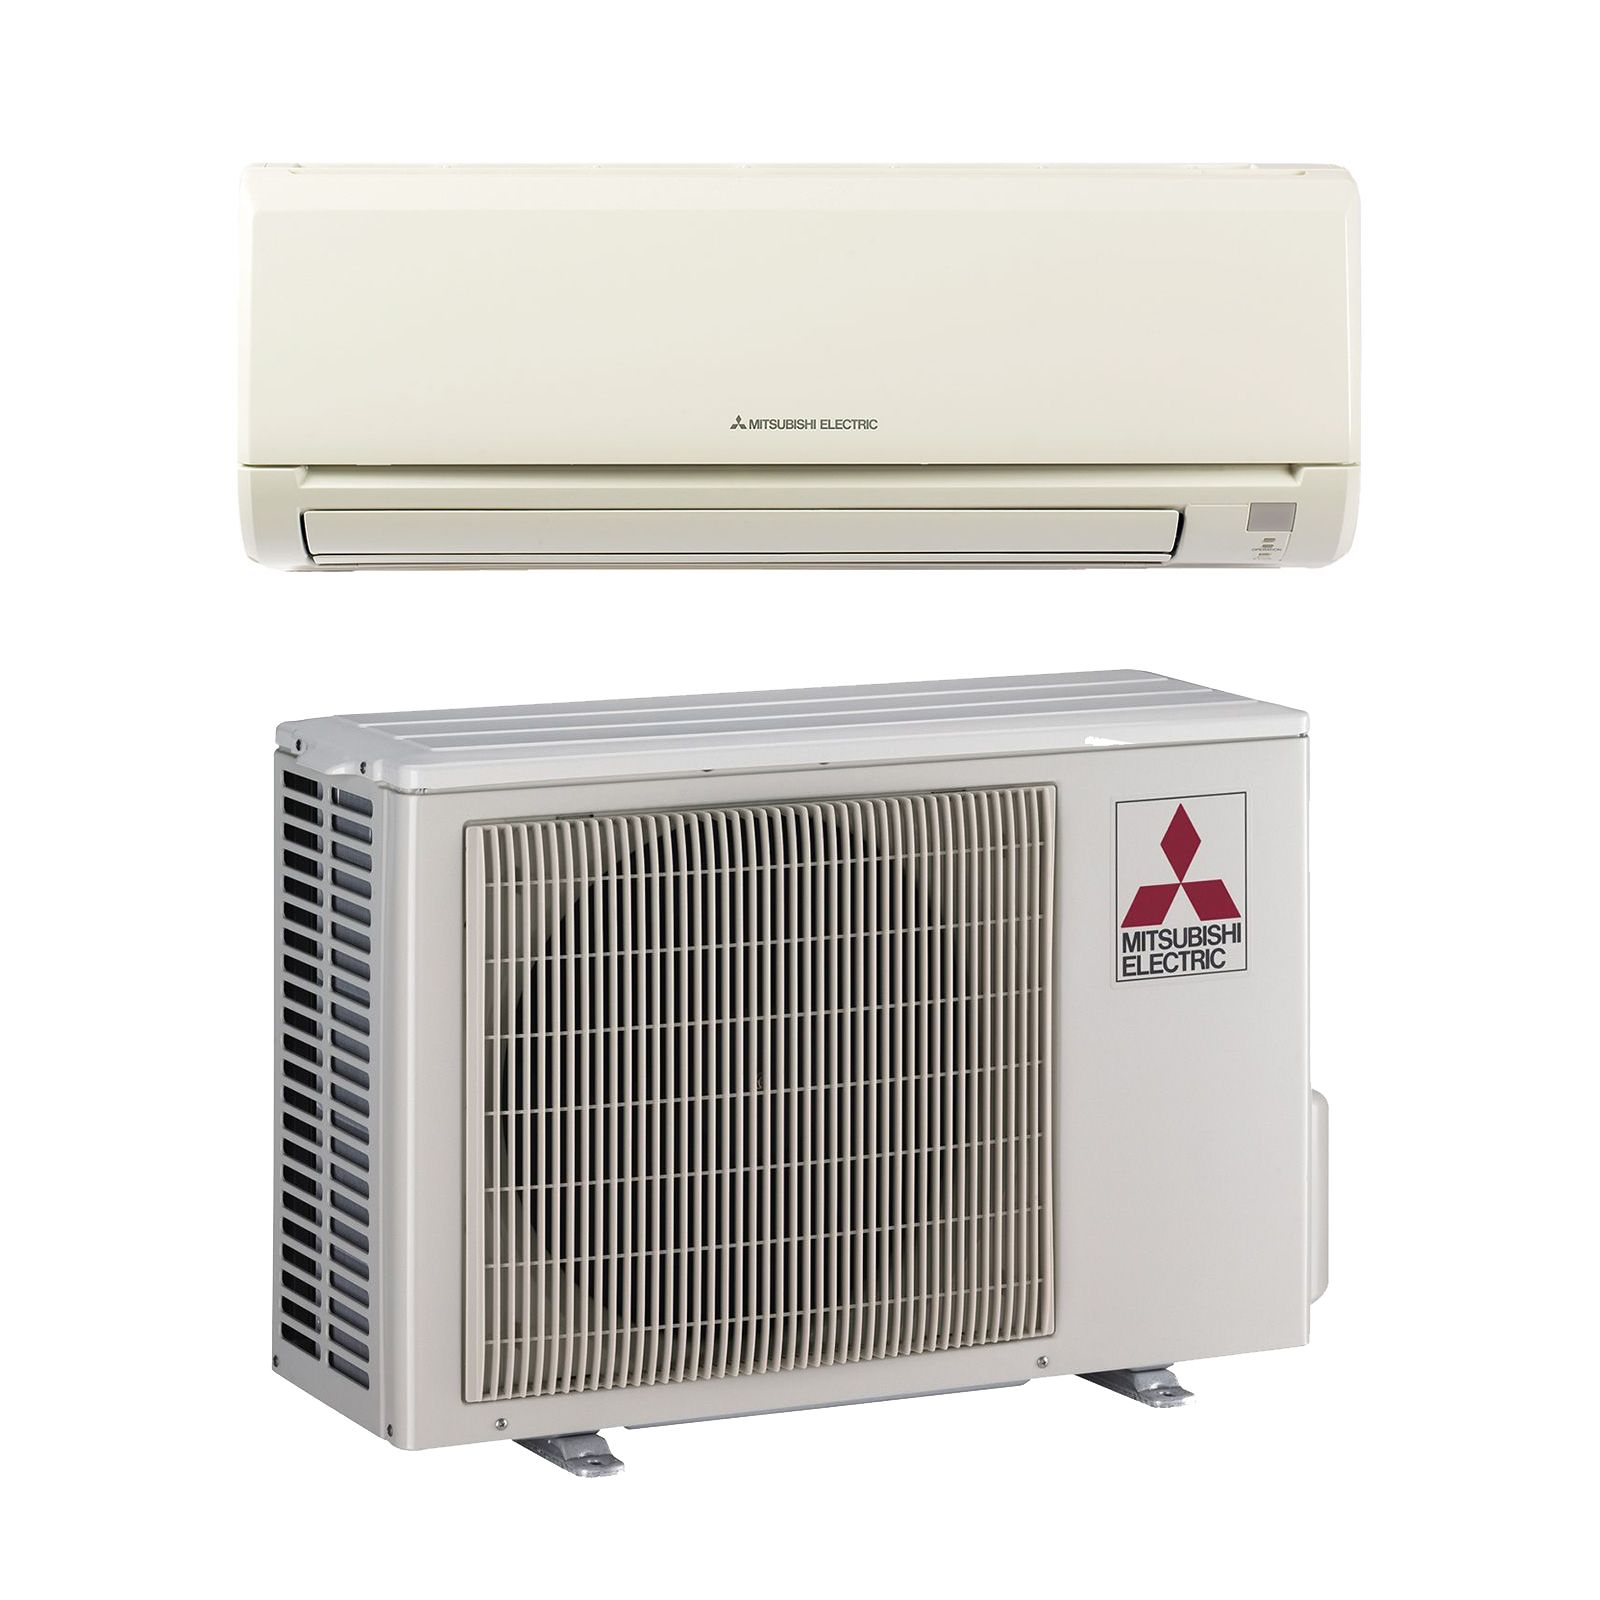 cost and picture systems popular files heating mitsubishi units conditioning trend uncategorized cooling air incredible of